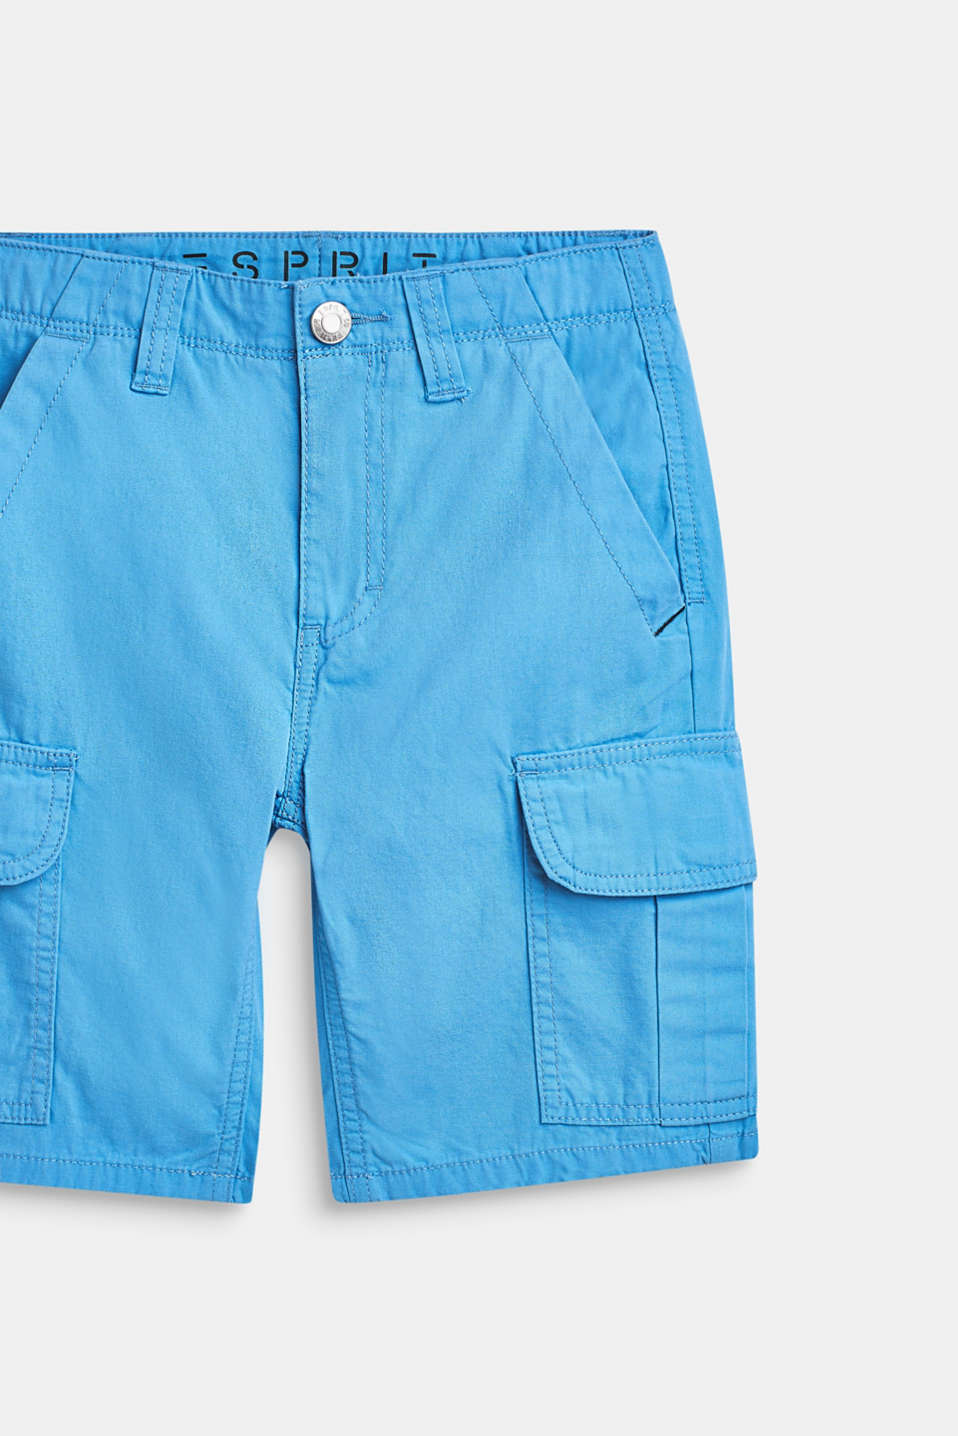 Shorts in a cargo style, 100% cotton, LCAZUR BLUE, detail image number 1